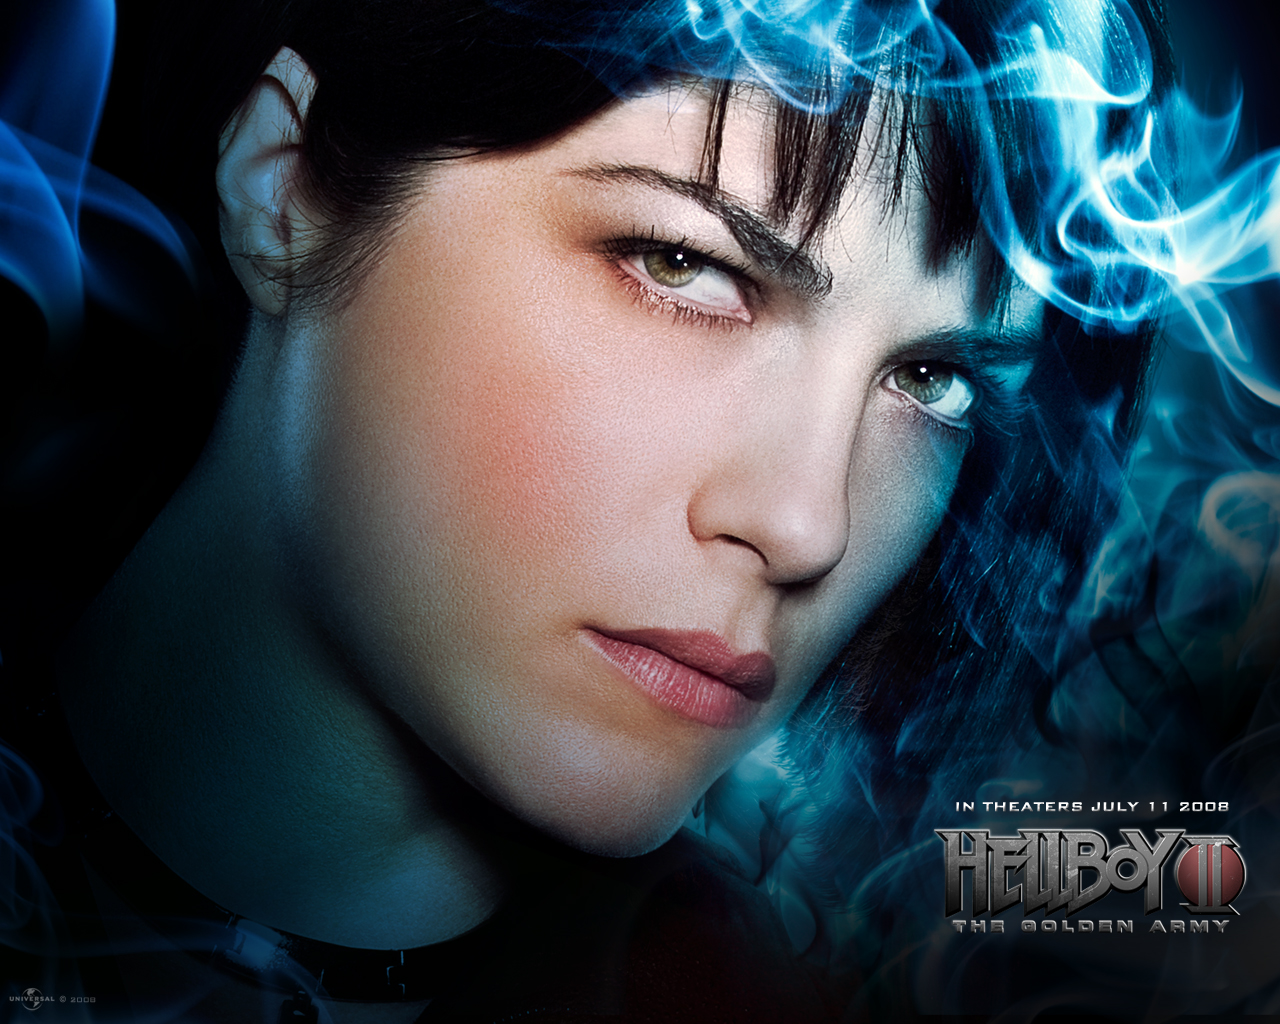 Selma blair hellboy ii: the golden army